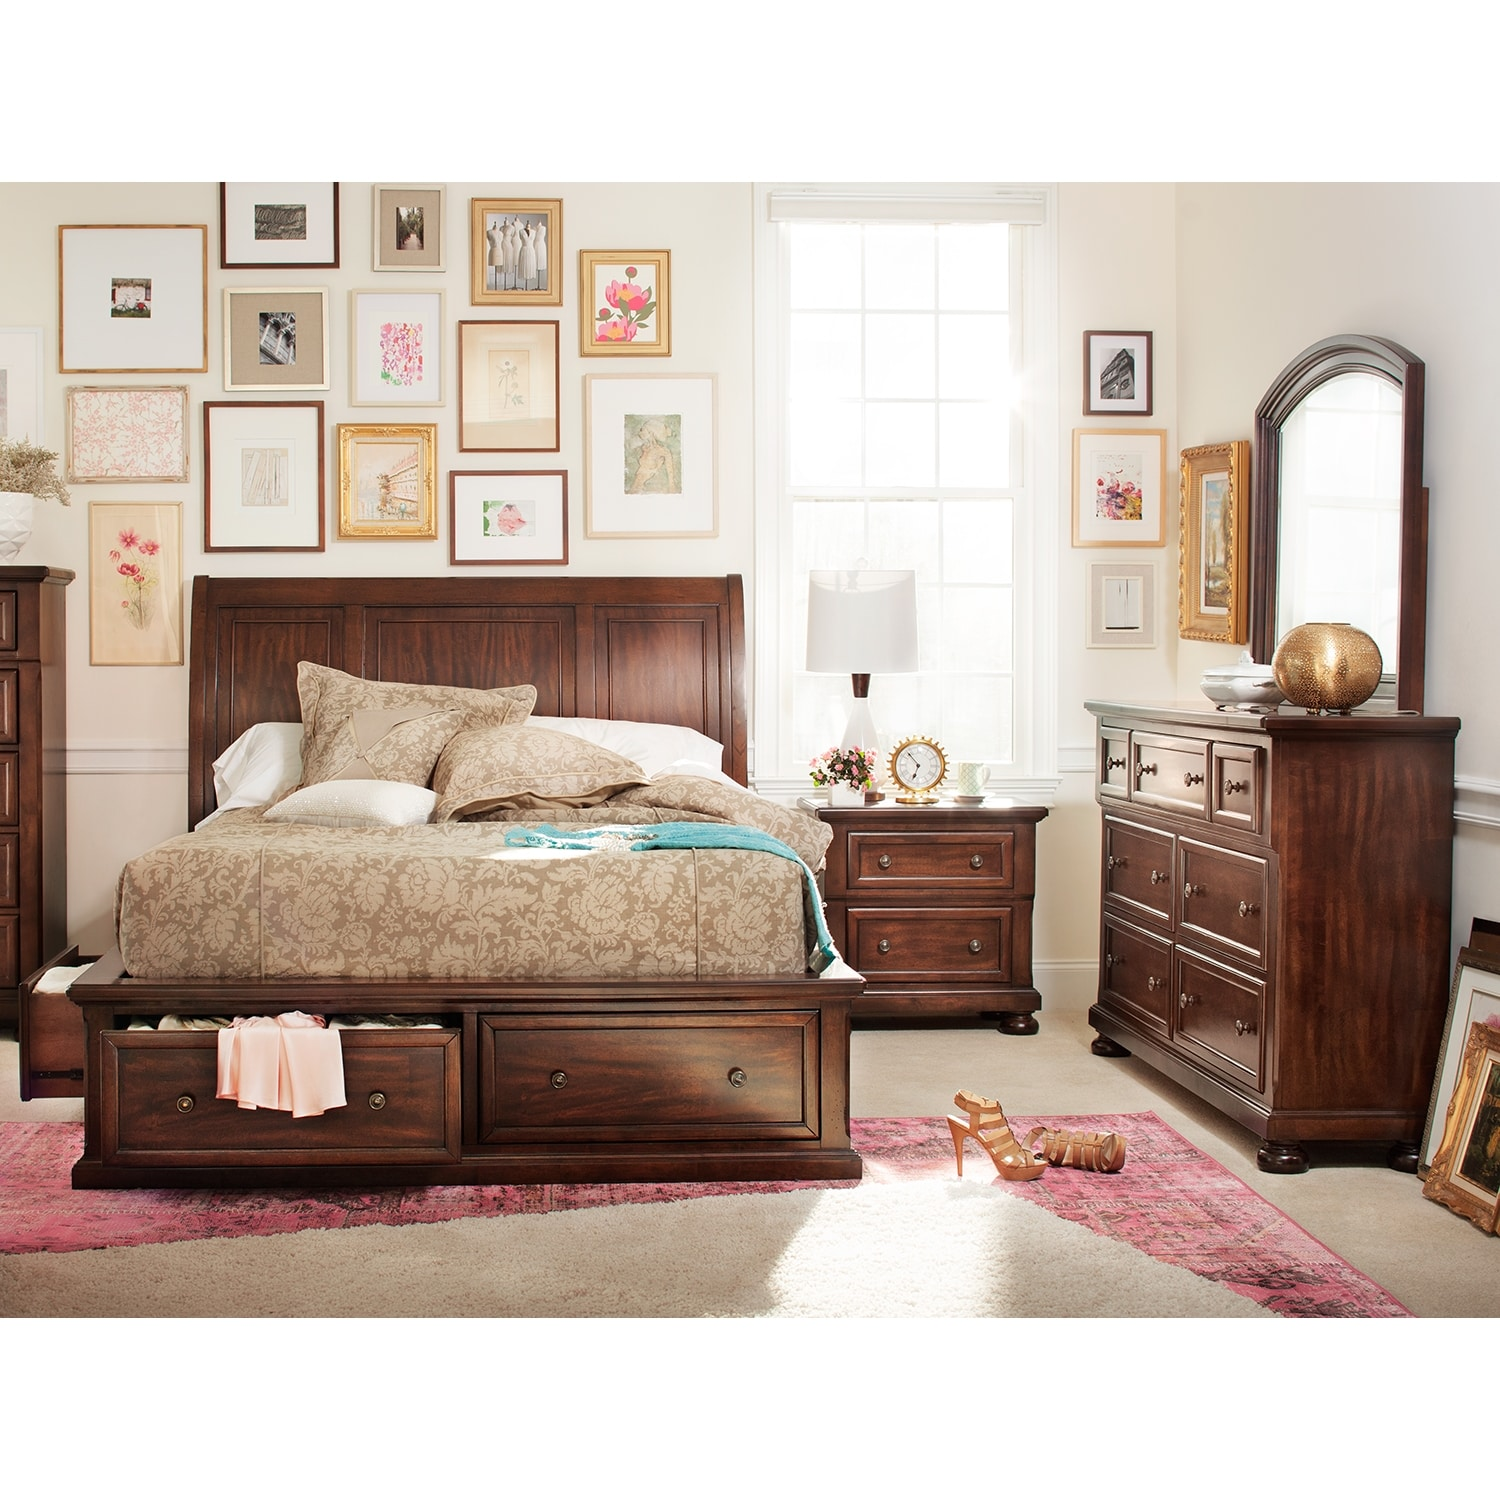 Storage Bedroom Furniture: Hanover 6-Piece King Storage Bedroom Set